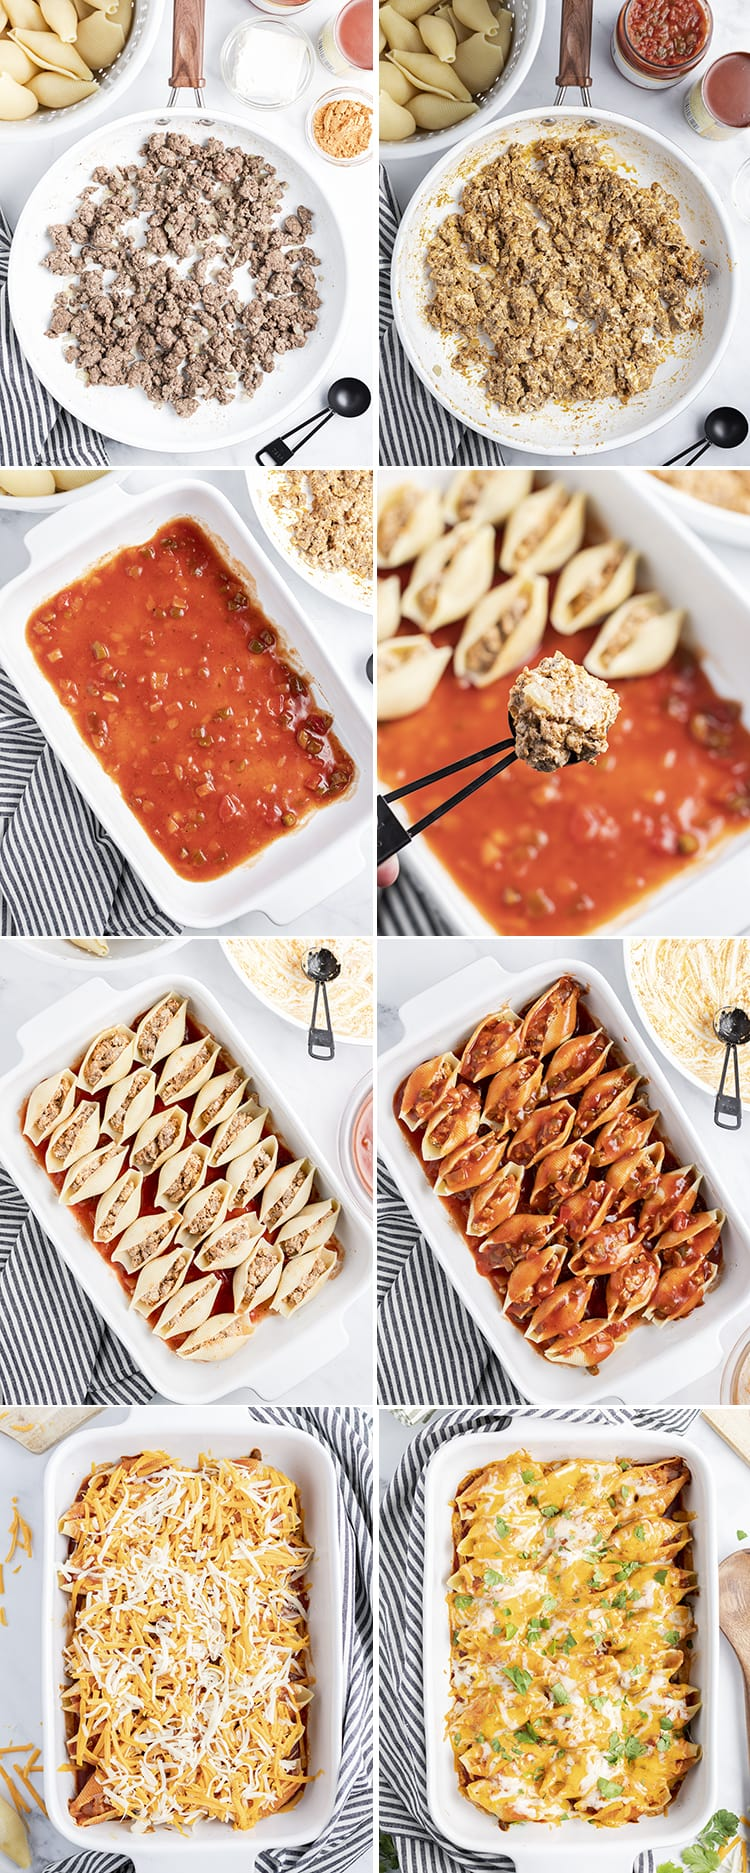 How to make Mexican stuffed shells